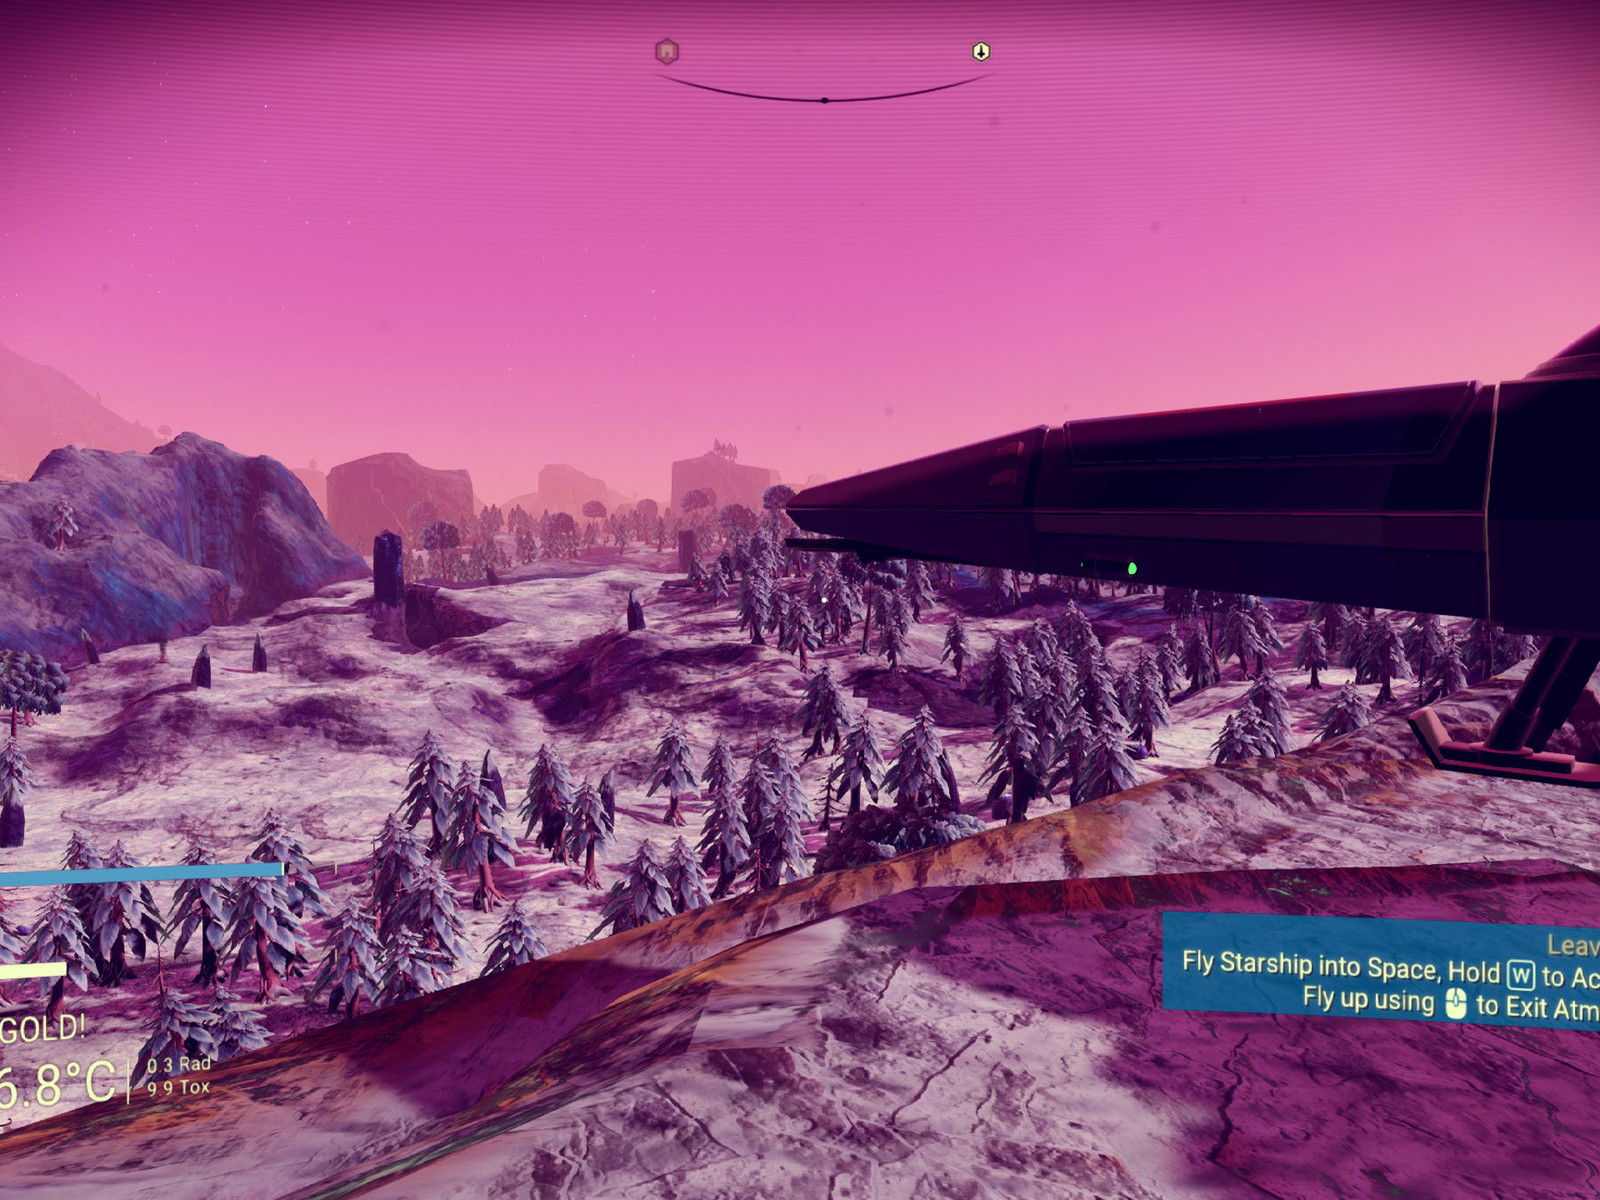 You can technically play No Man's Sky in VR, but you probably won't want to